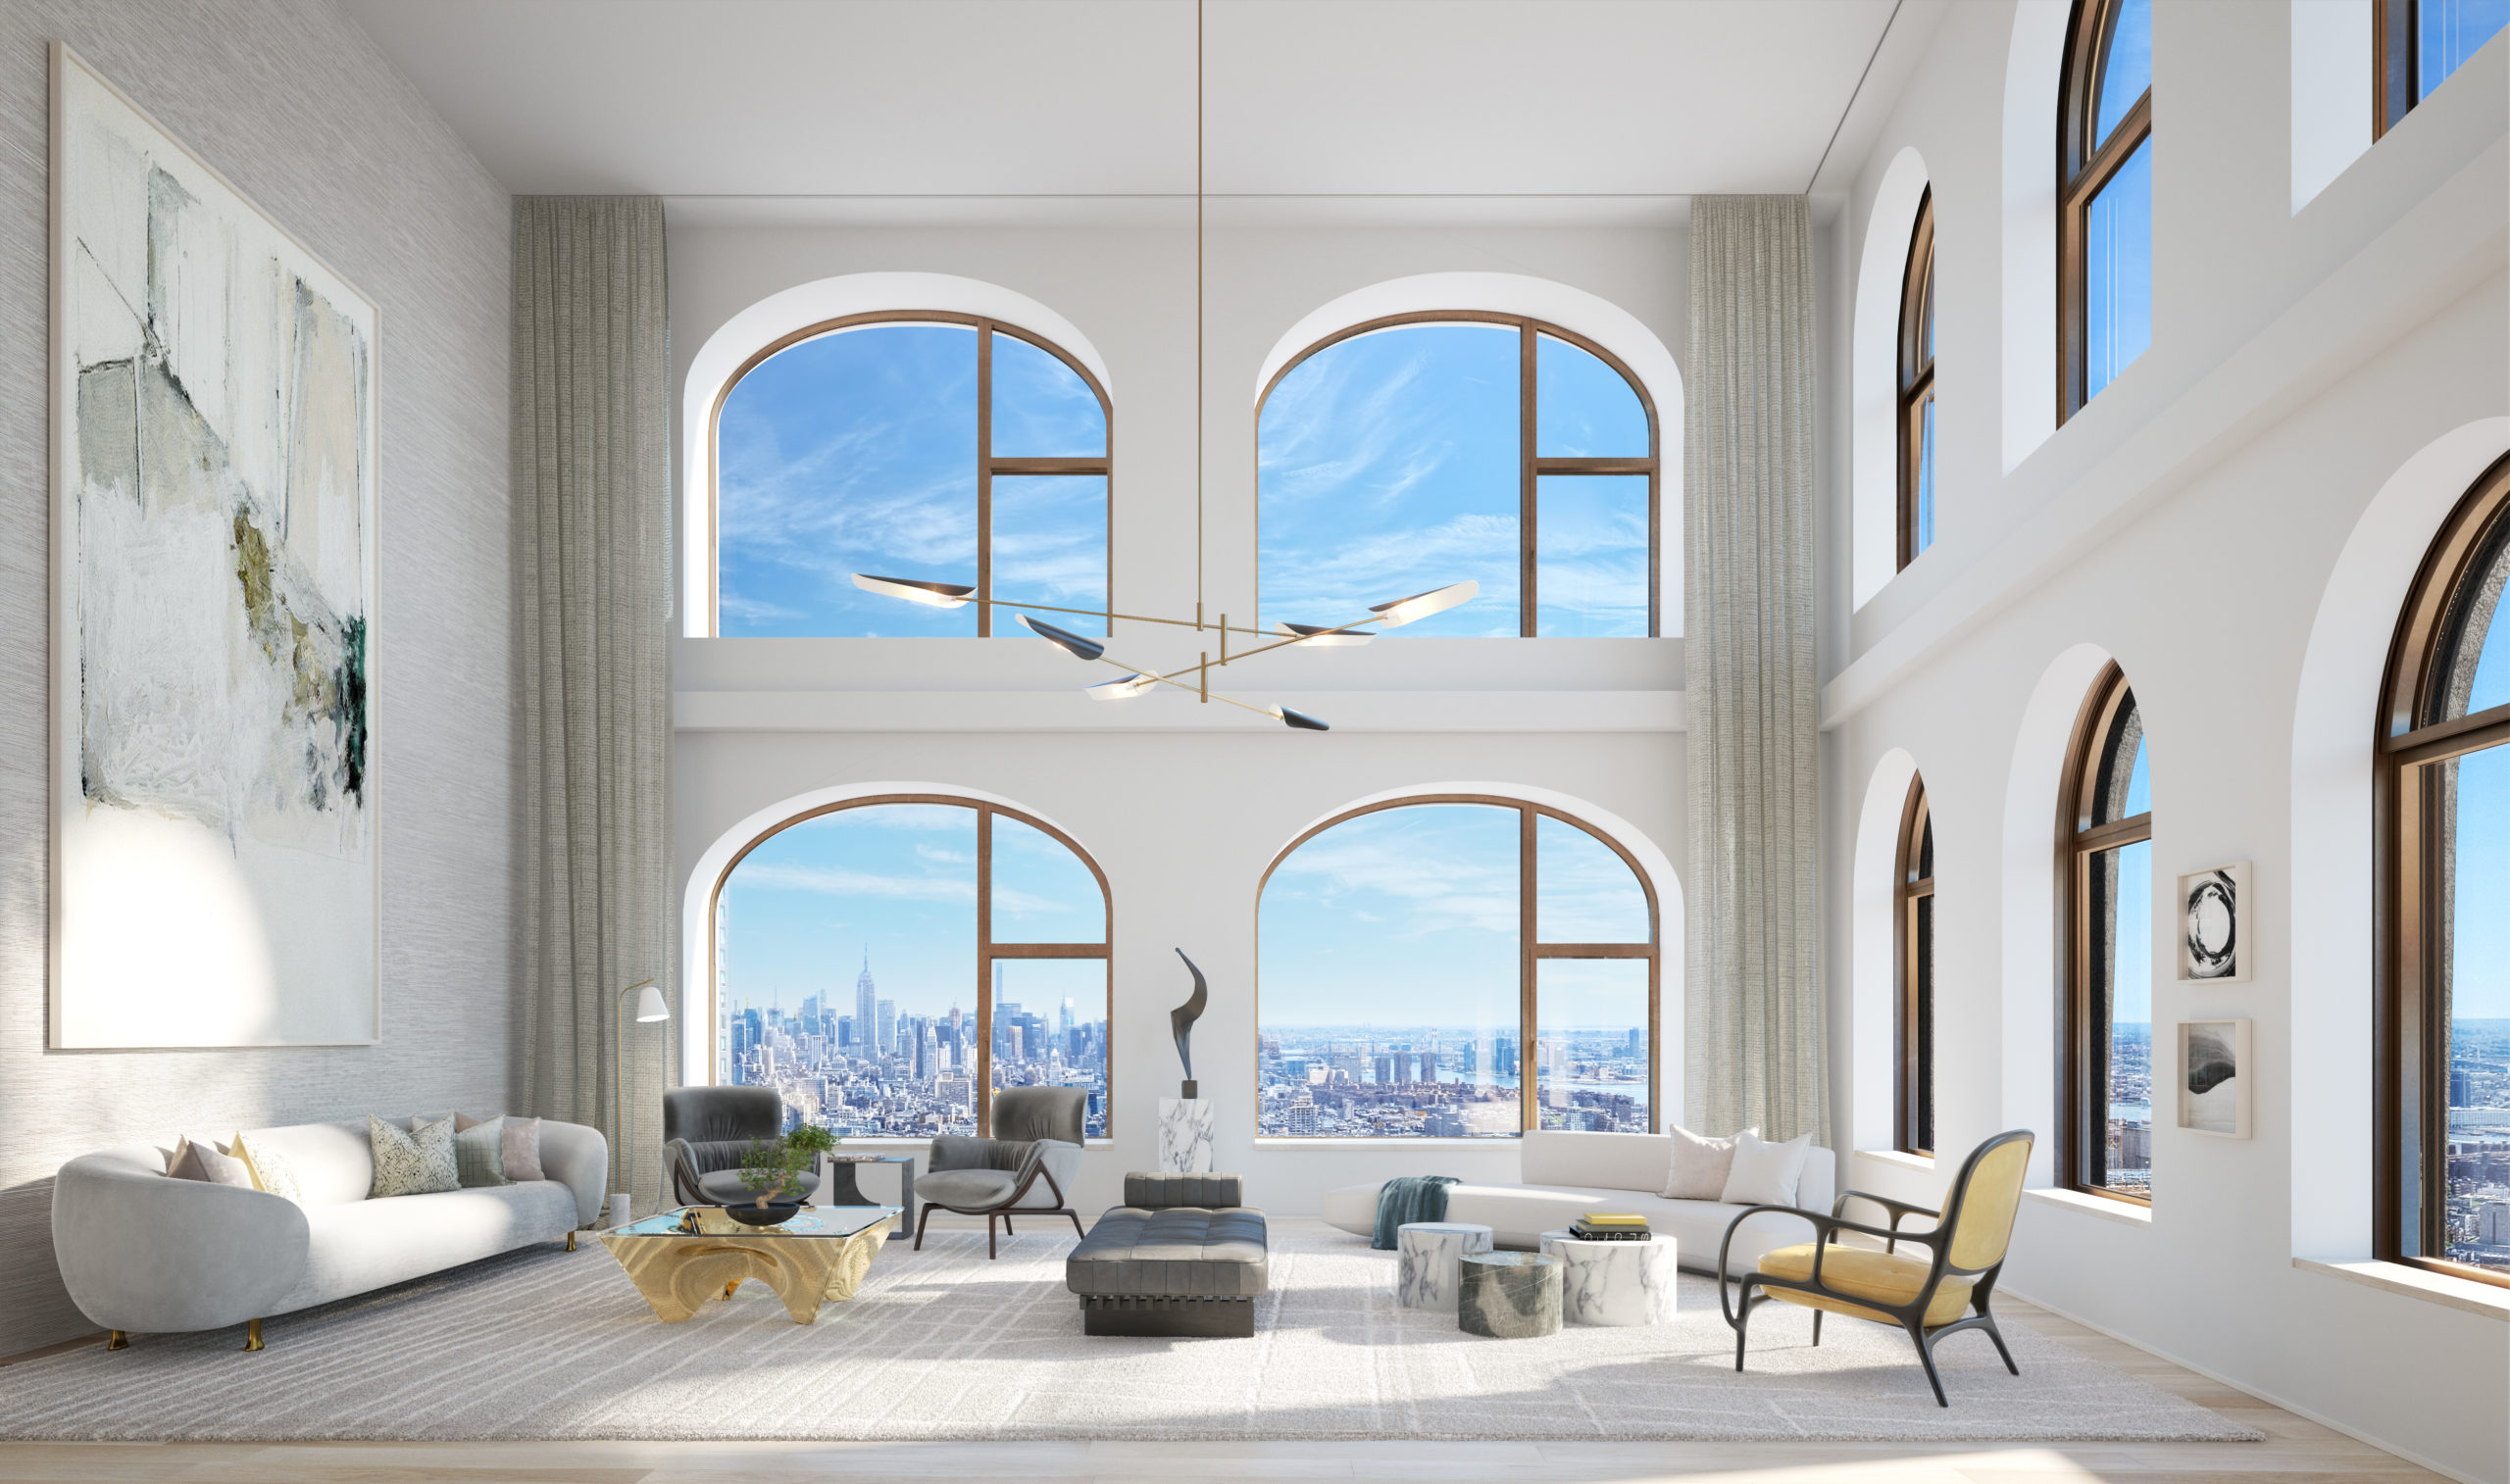 Large living room with high ceilings, white walls, and 10 windows. Interior of 130 Williams condo designed by David Adjaye.